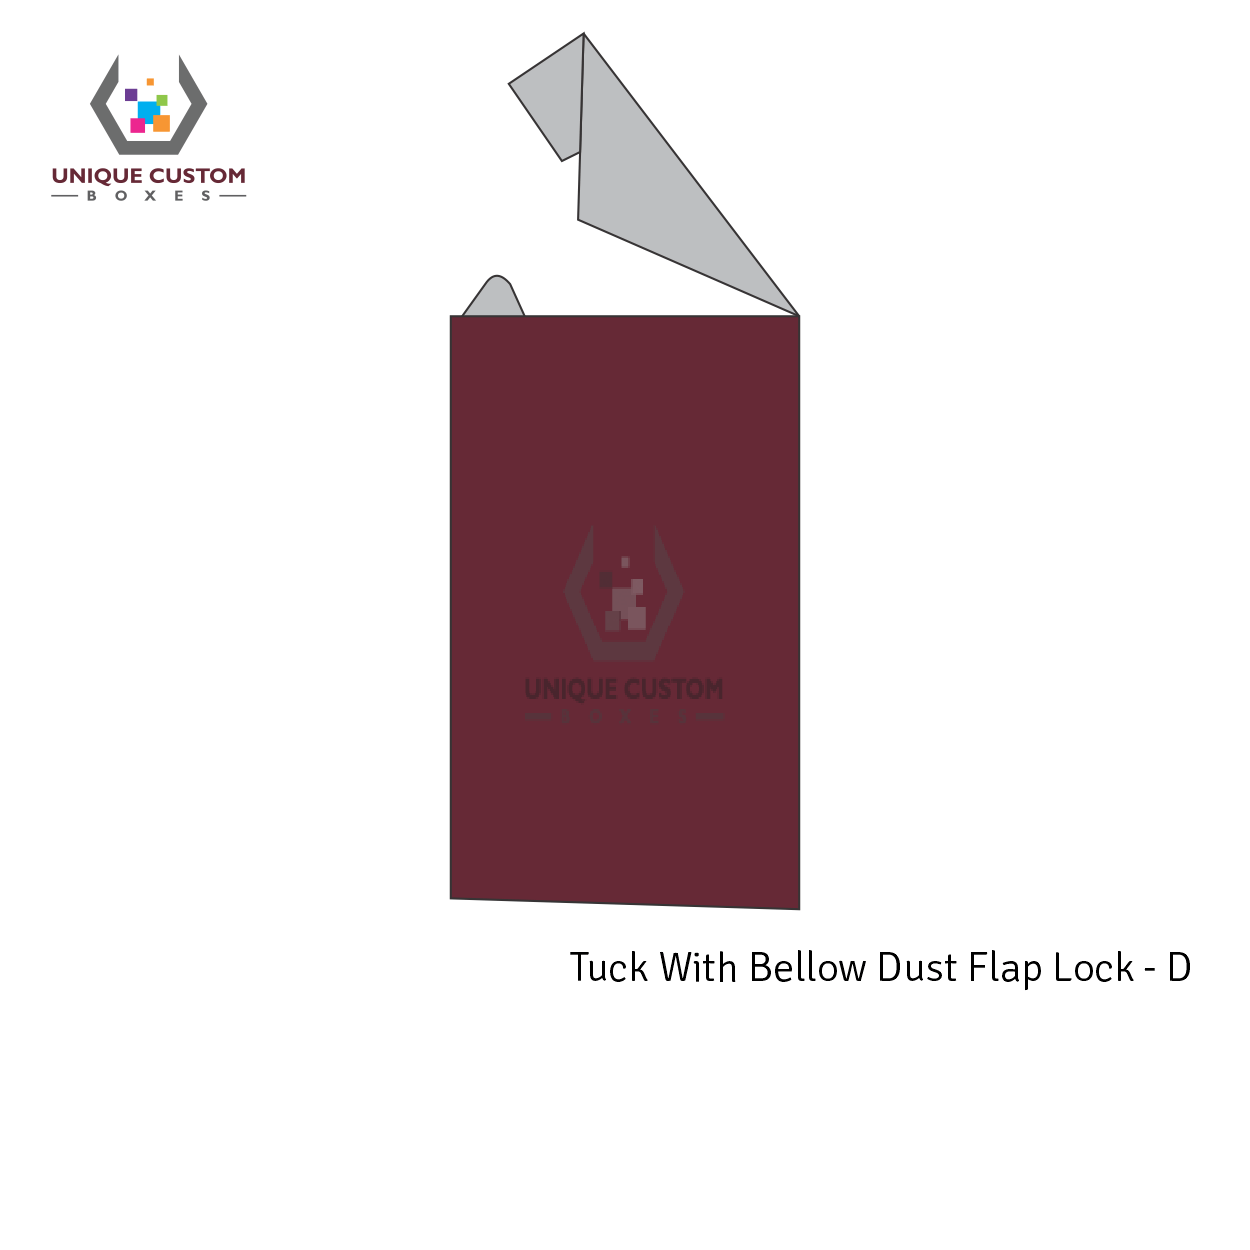 Tuck With Bellow Dust Flap Lock-4